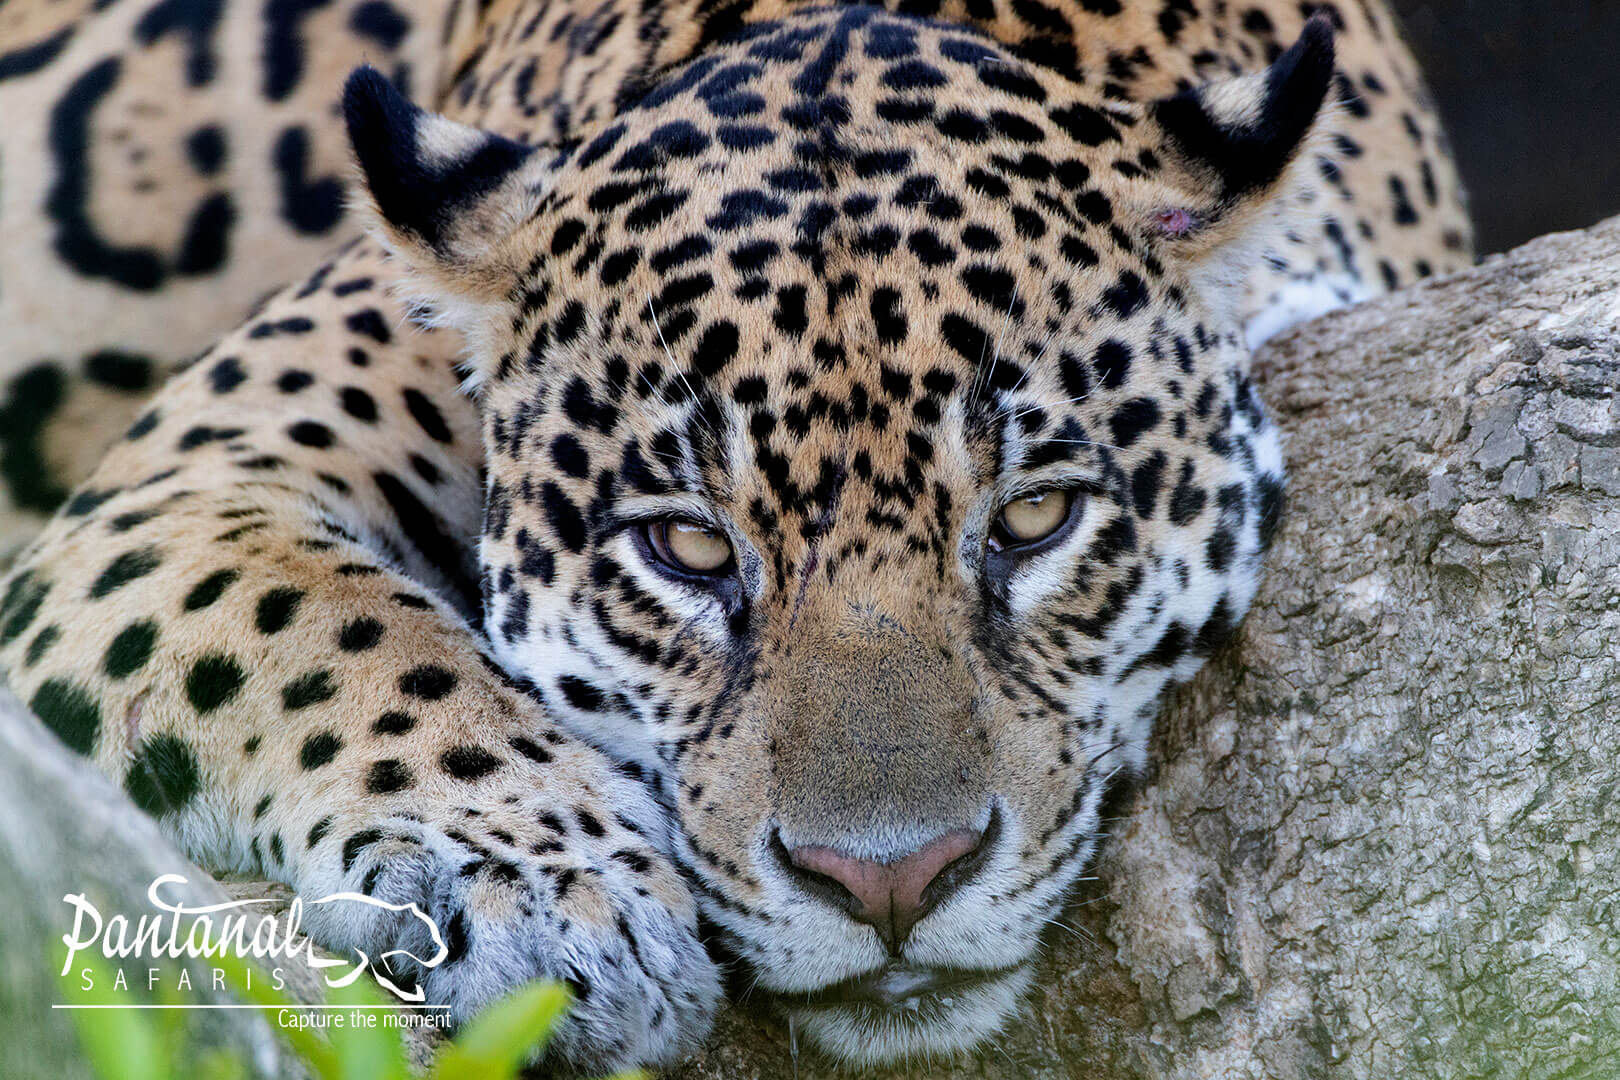 16-day jaguar tour